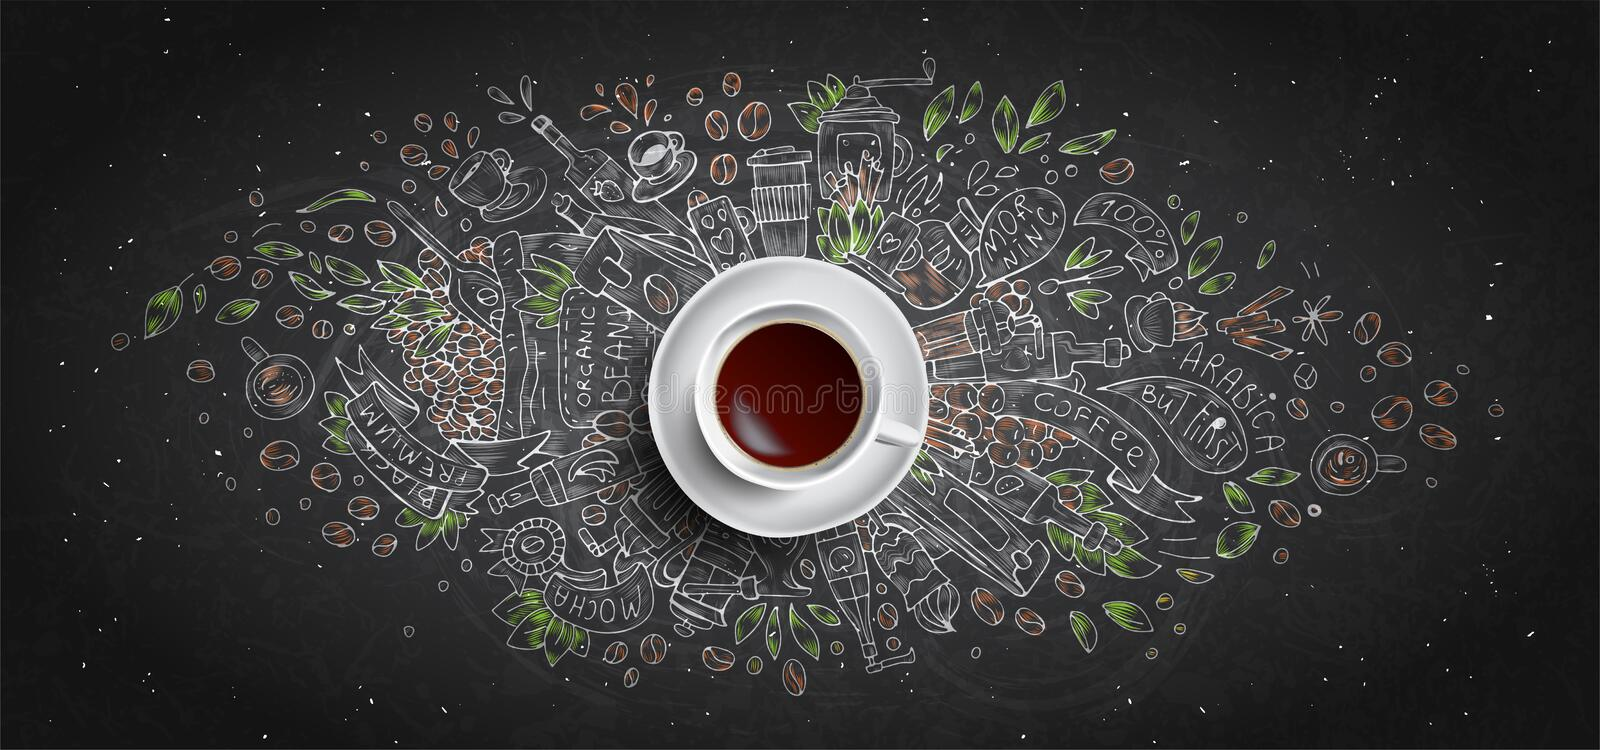 Coffee chalk illustrated concept on black board background - white coffee cup, top view with chalk doodle illustration royalty free illustration